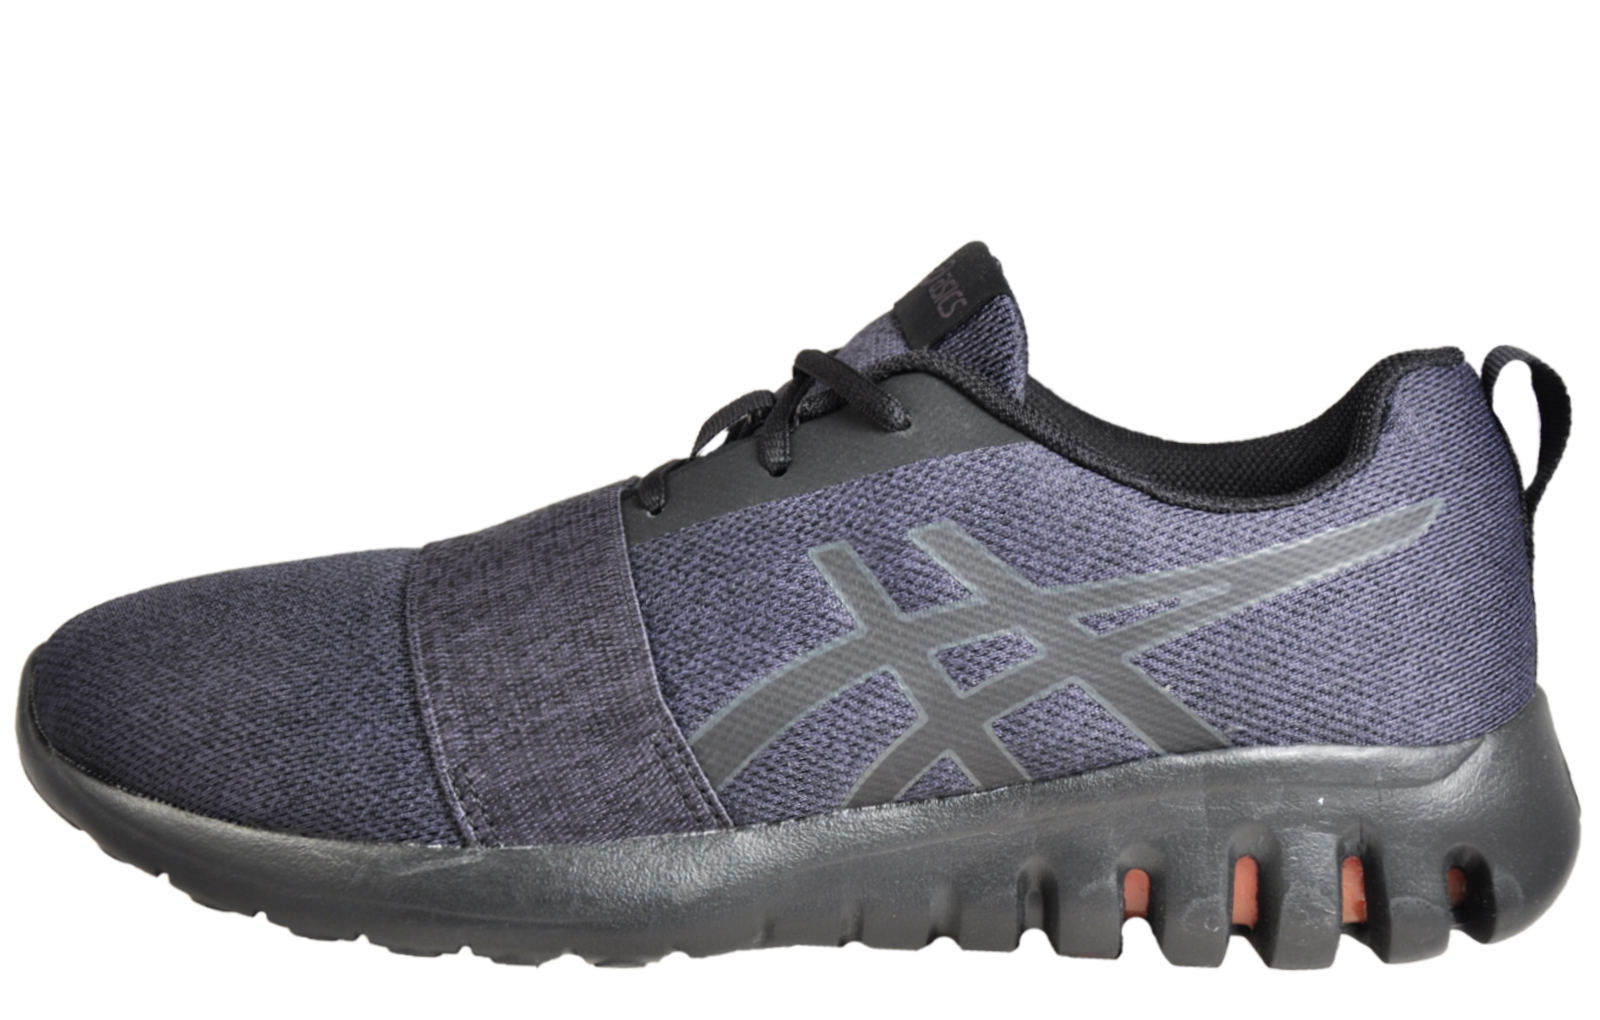 Asics Gel Quantifier Men s High-Performance Running Shoes Fitness Gym  Trainers 47efbc5b242